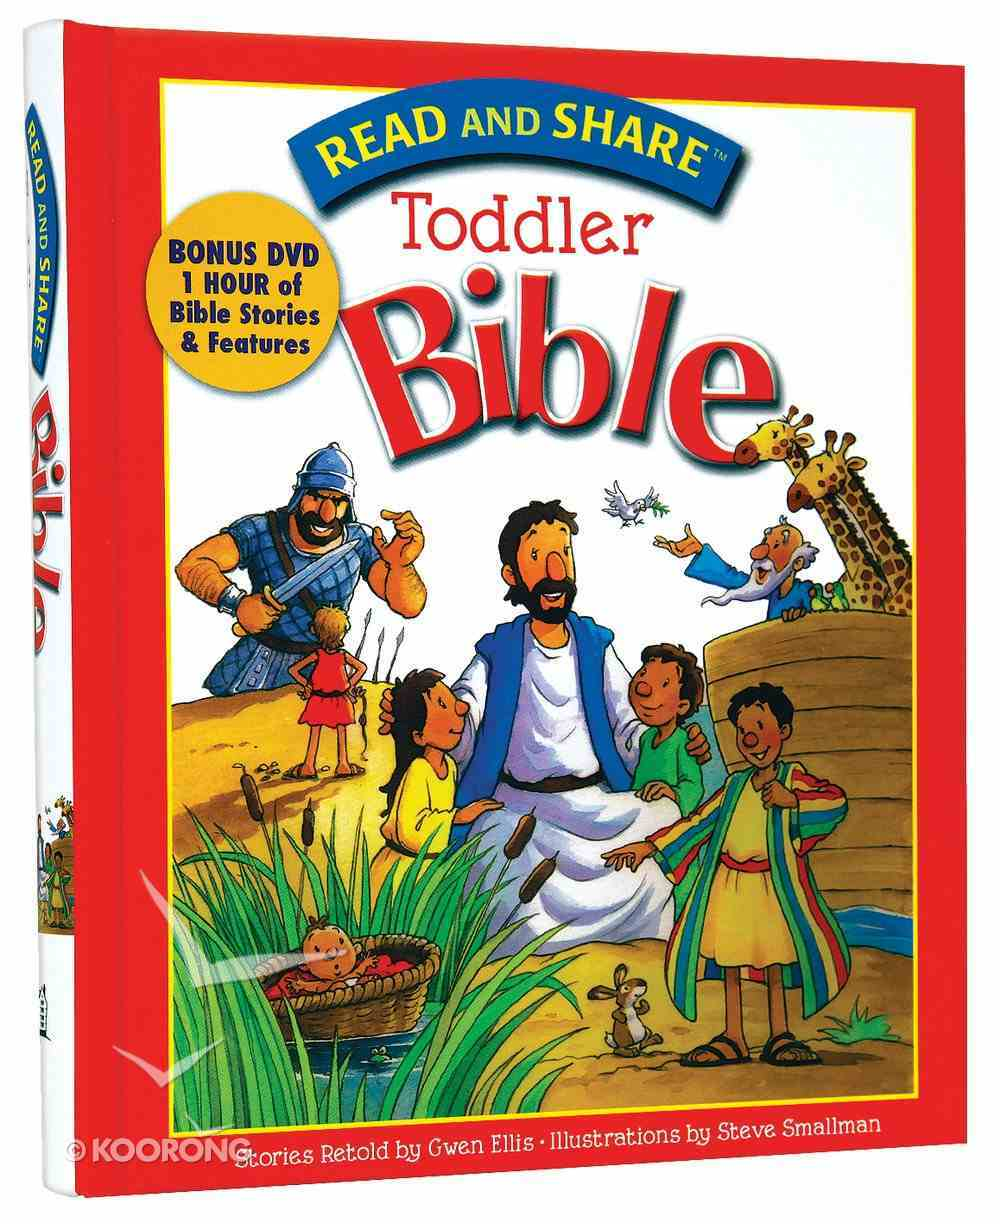 Toddler Bible (Incl DVD) (Read And Share Series) Hardback